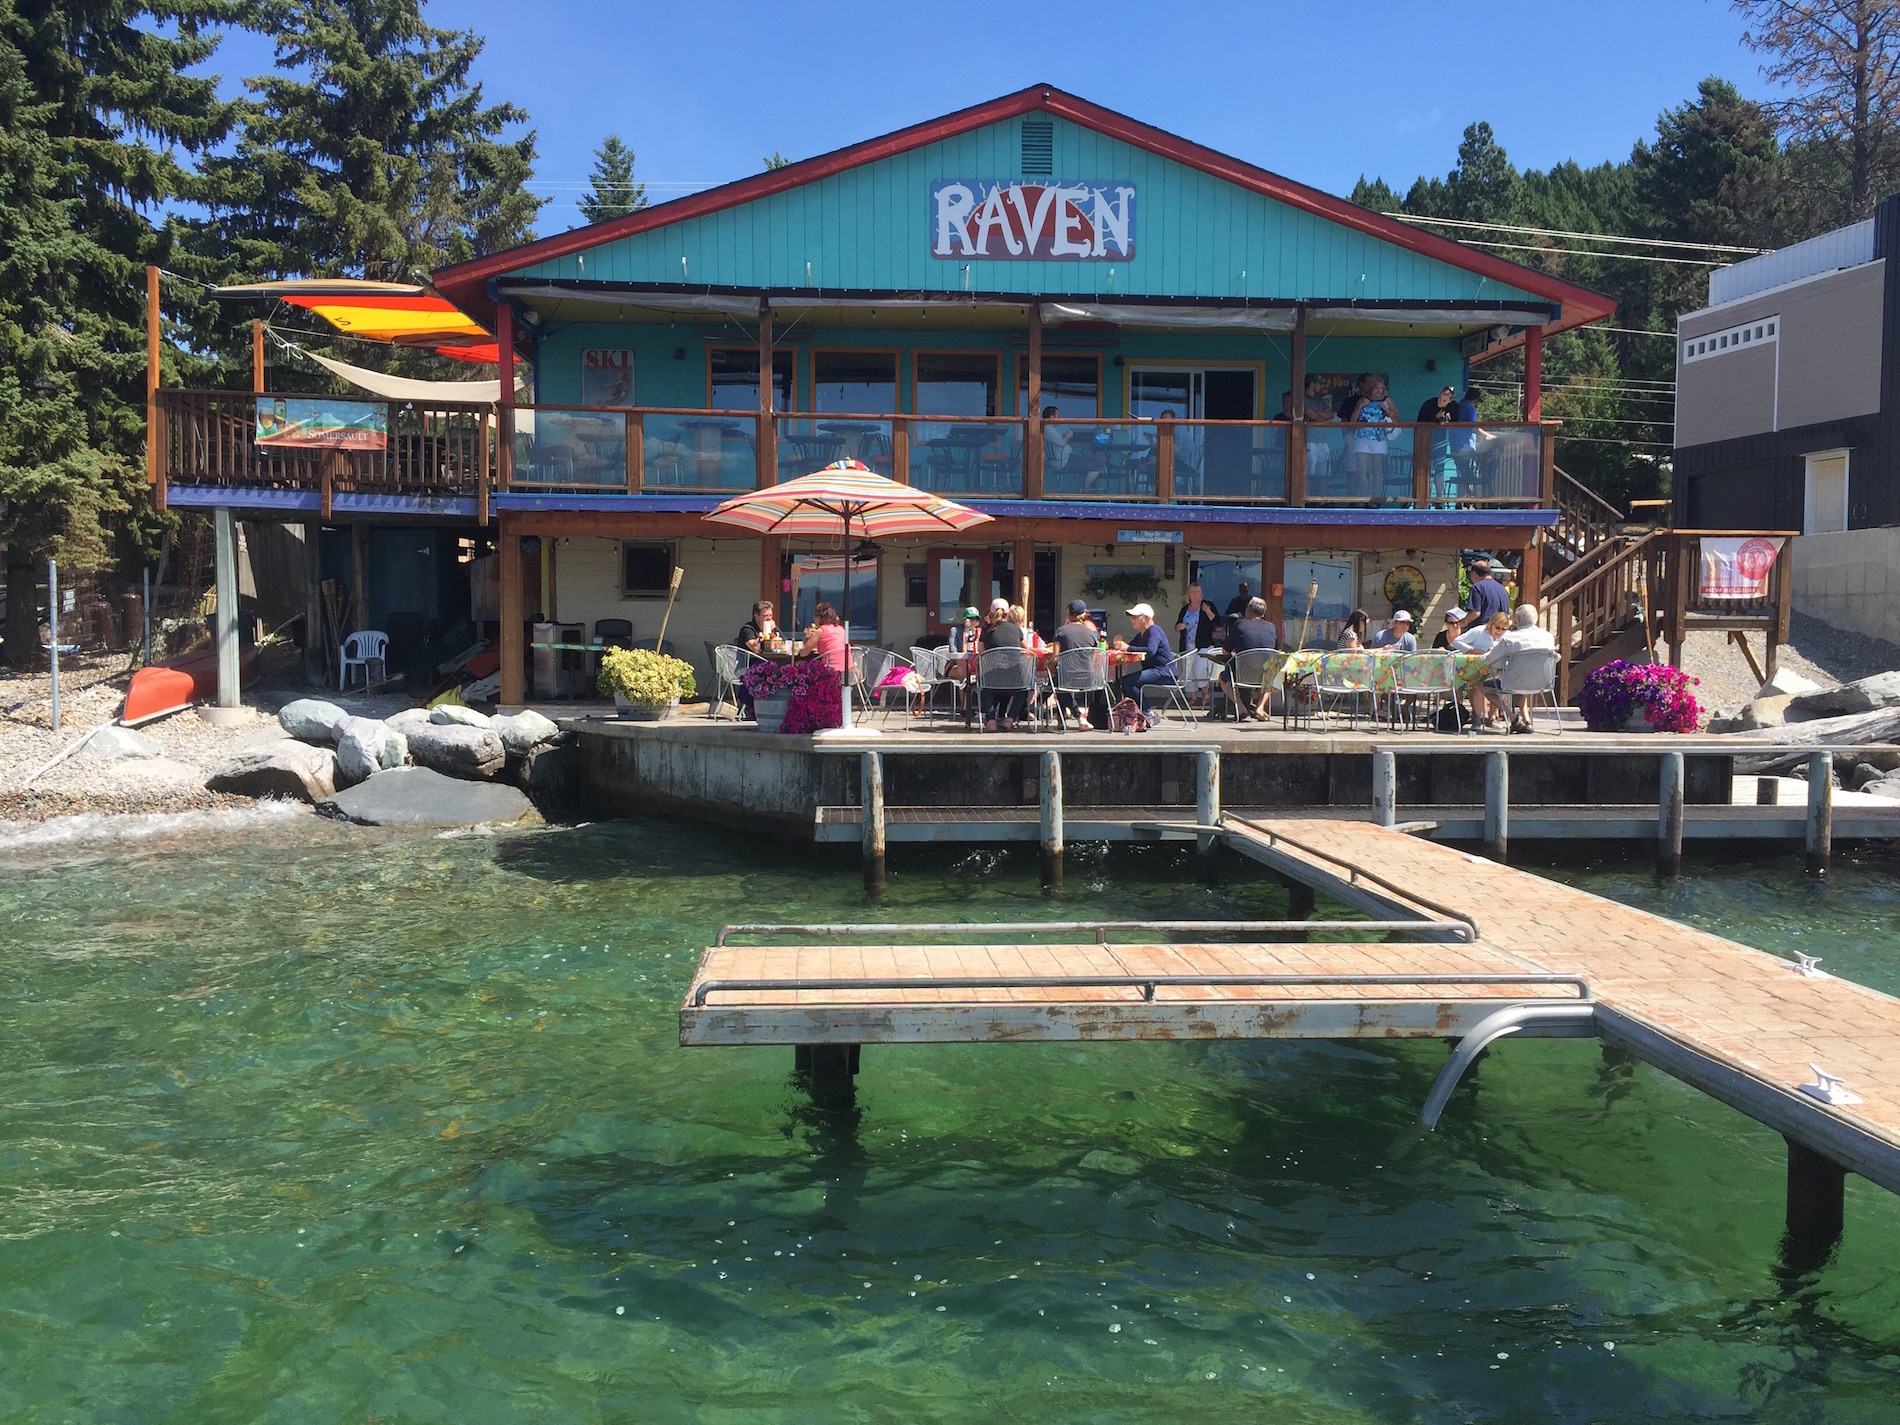 Bigfork's Local Hot Spot - VIE Magazine